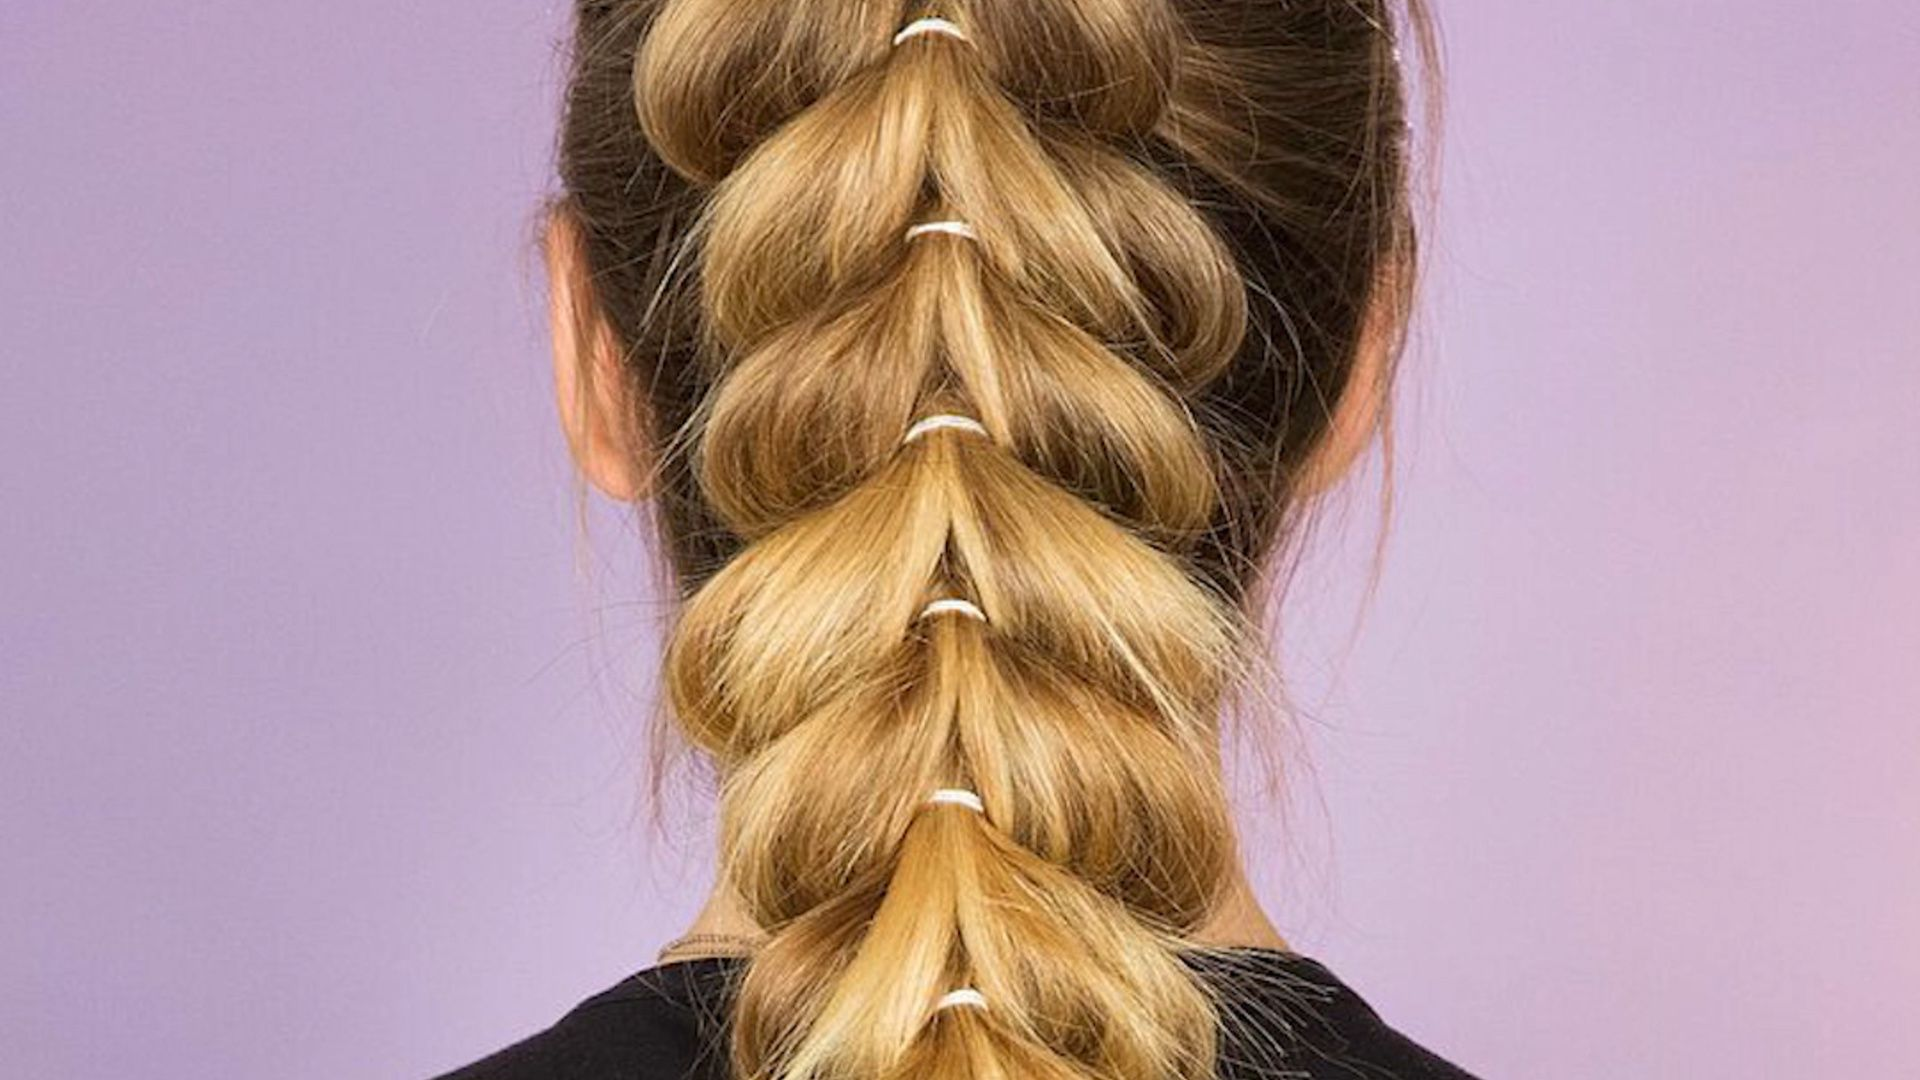 Upside Down Heart Braided Ponytail: This Braid Is The